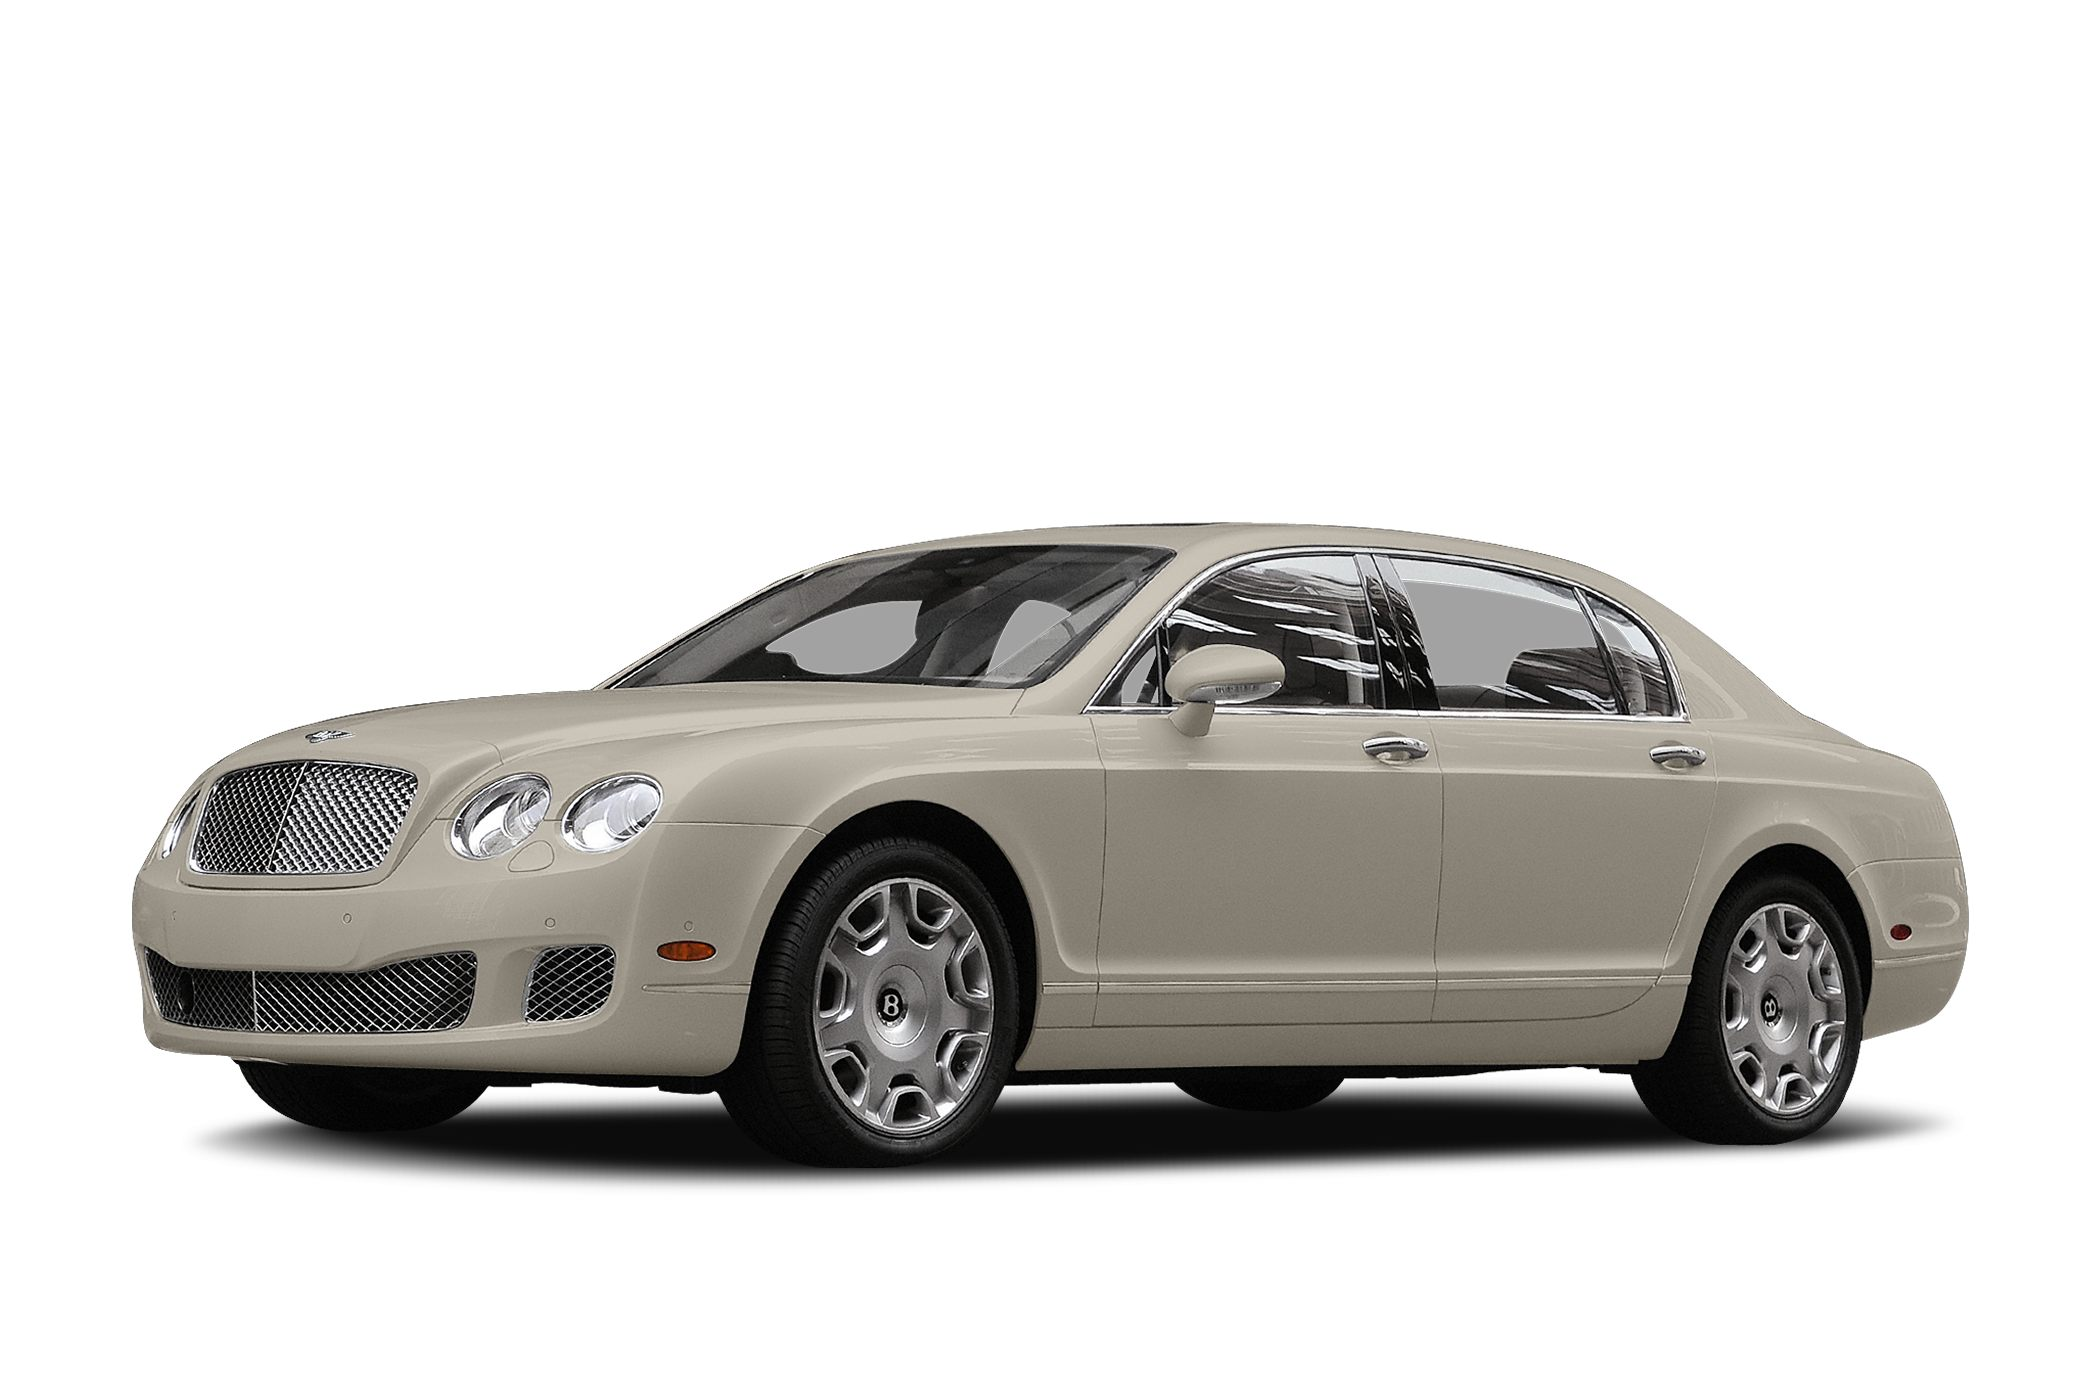 2009 Bentley Continental Flying Spur Information